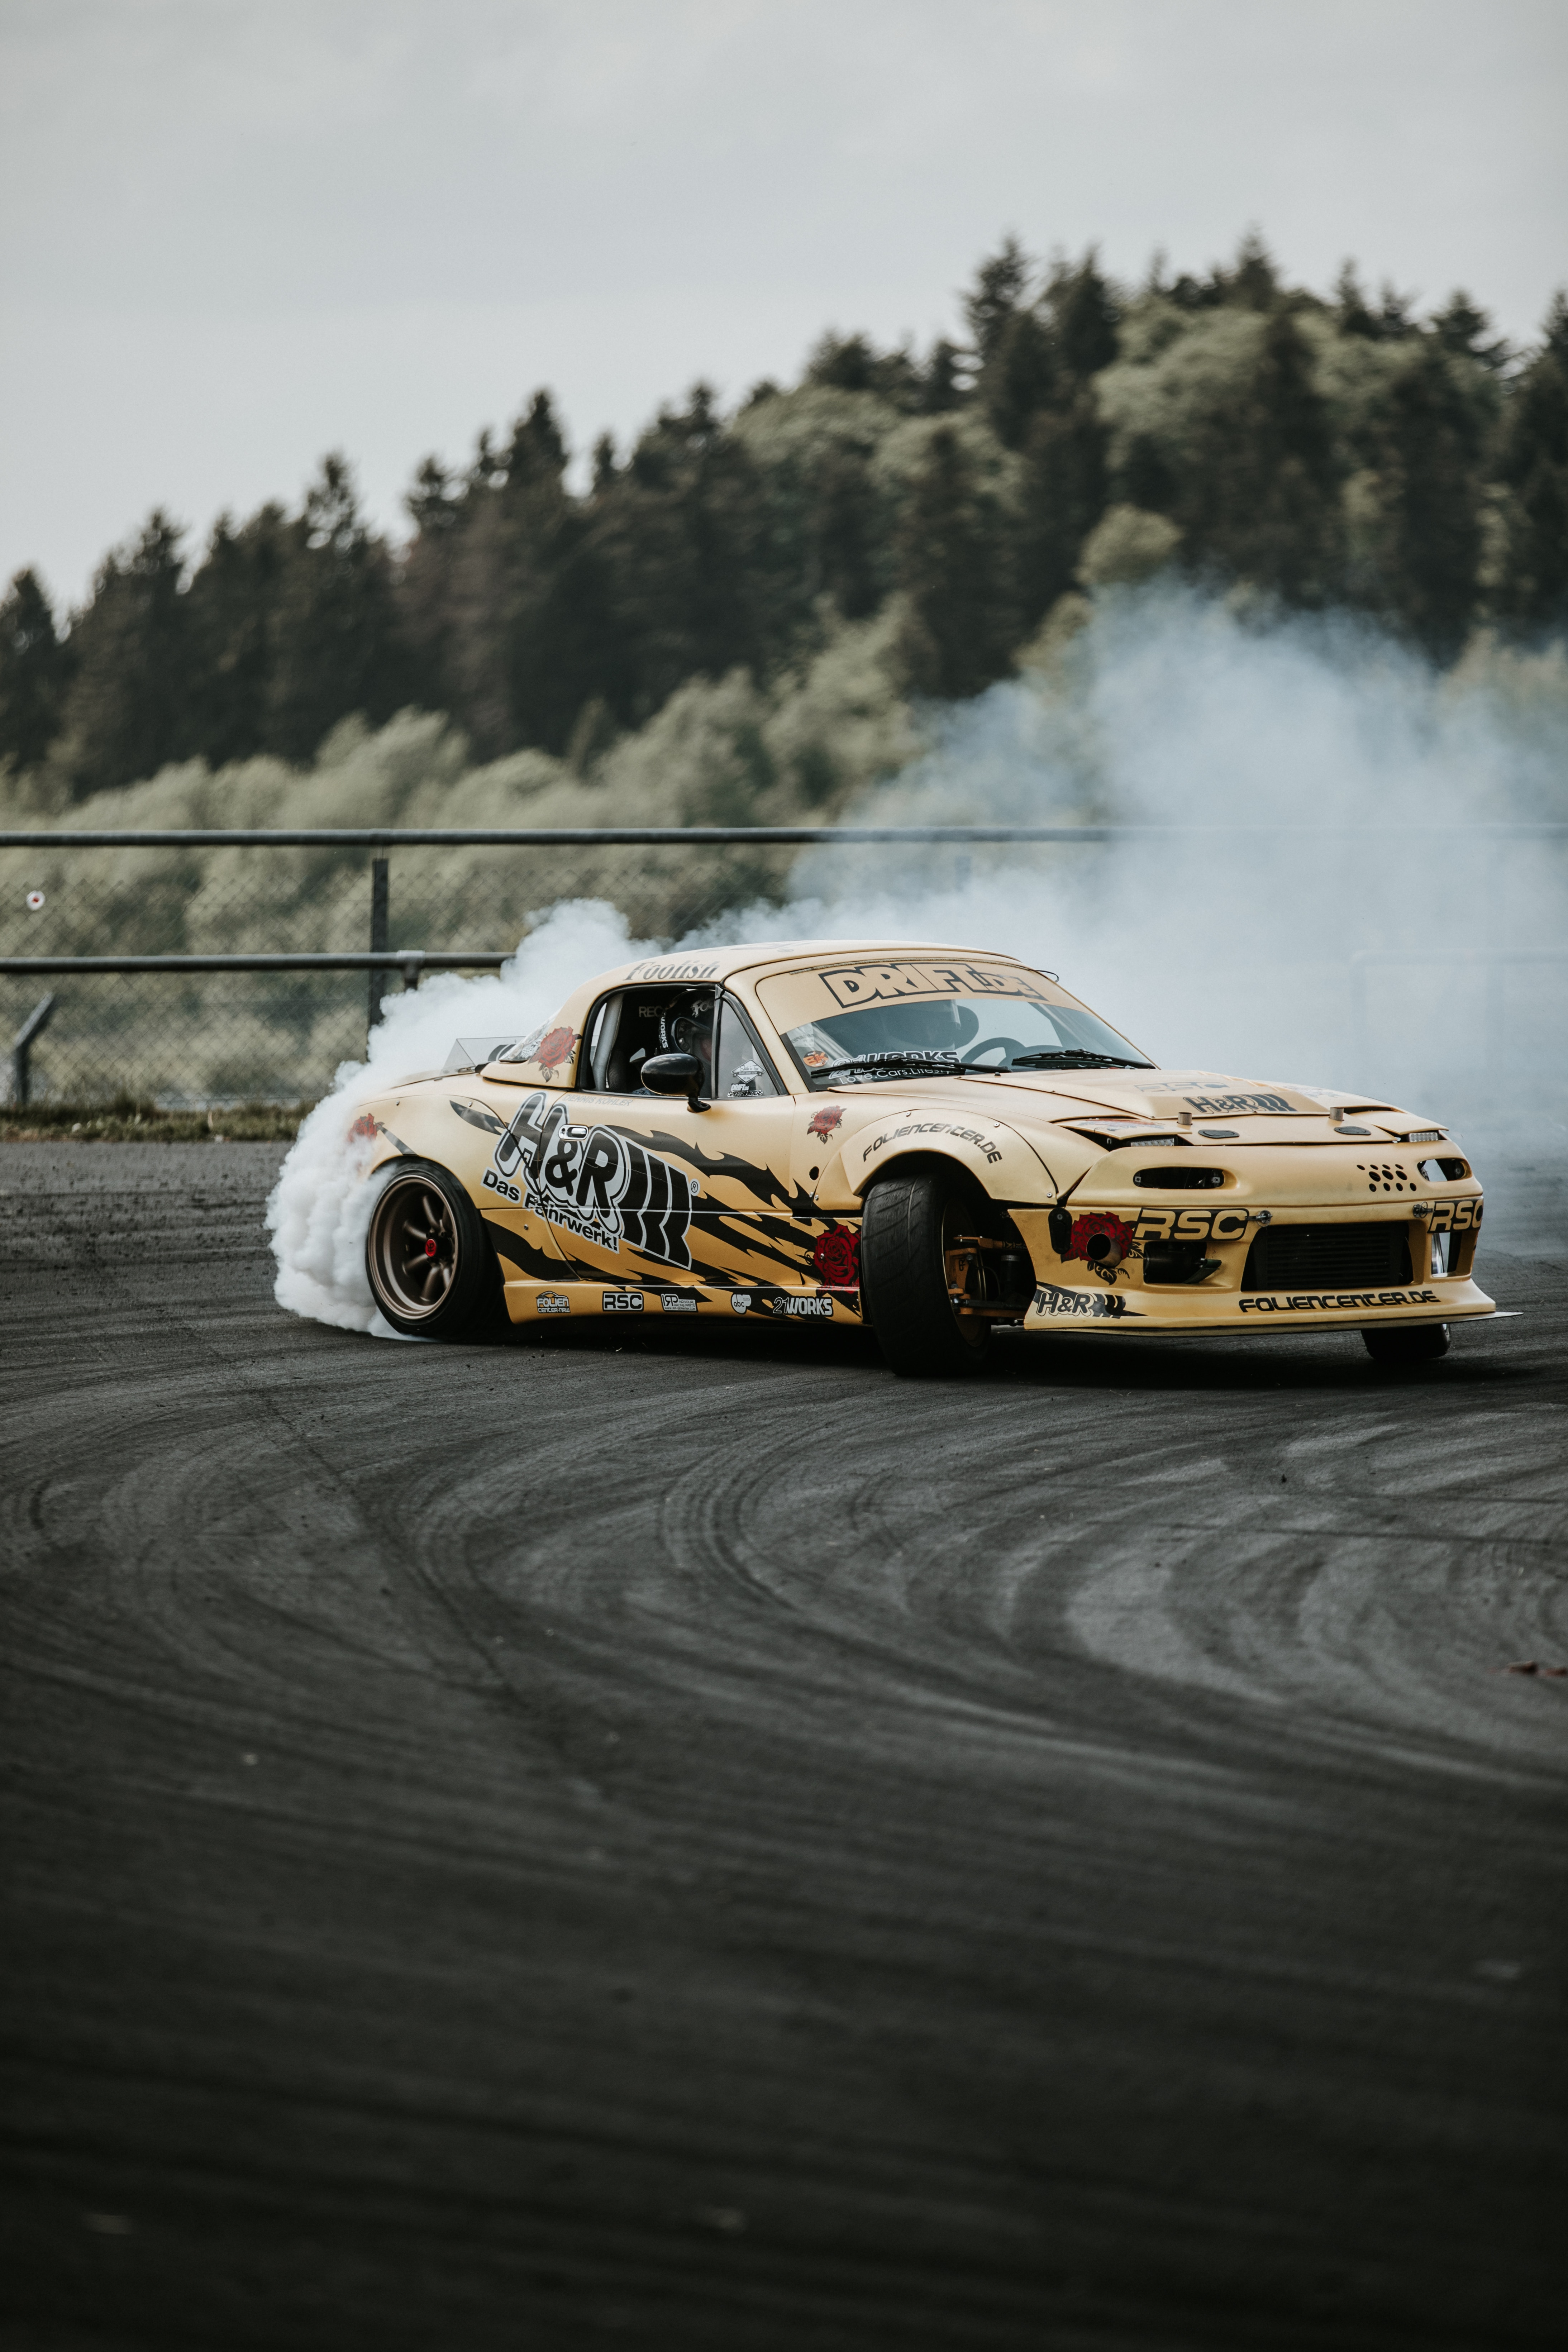 134667 download wallpaper Cars, Sports Car, Sports, Drift, Race, Tuning screensavers and pictures for free